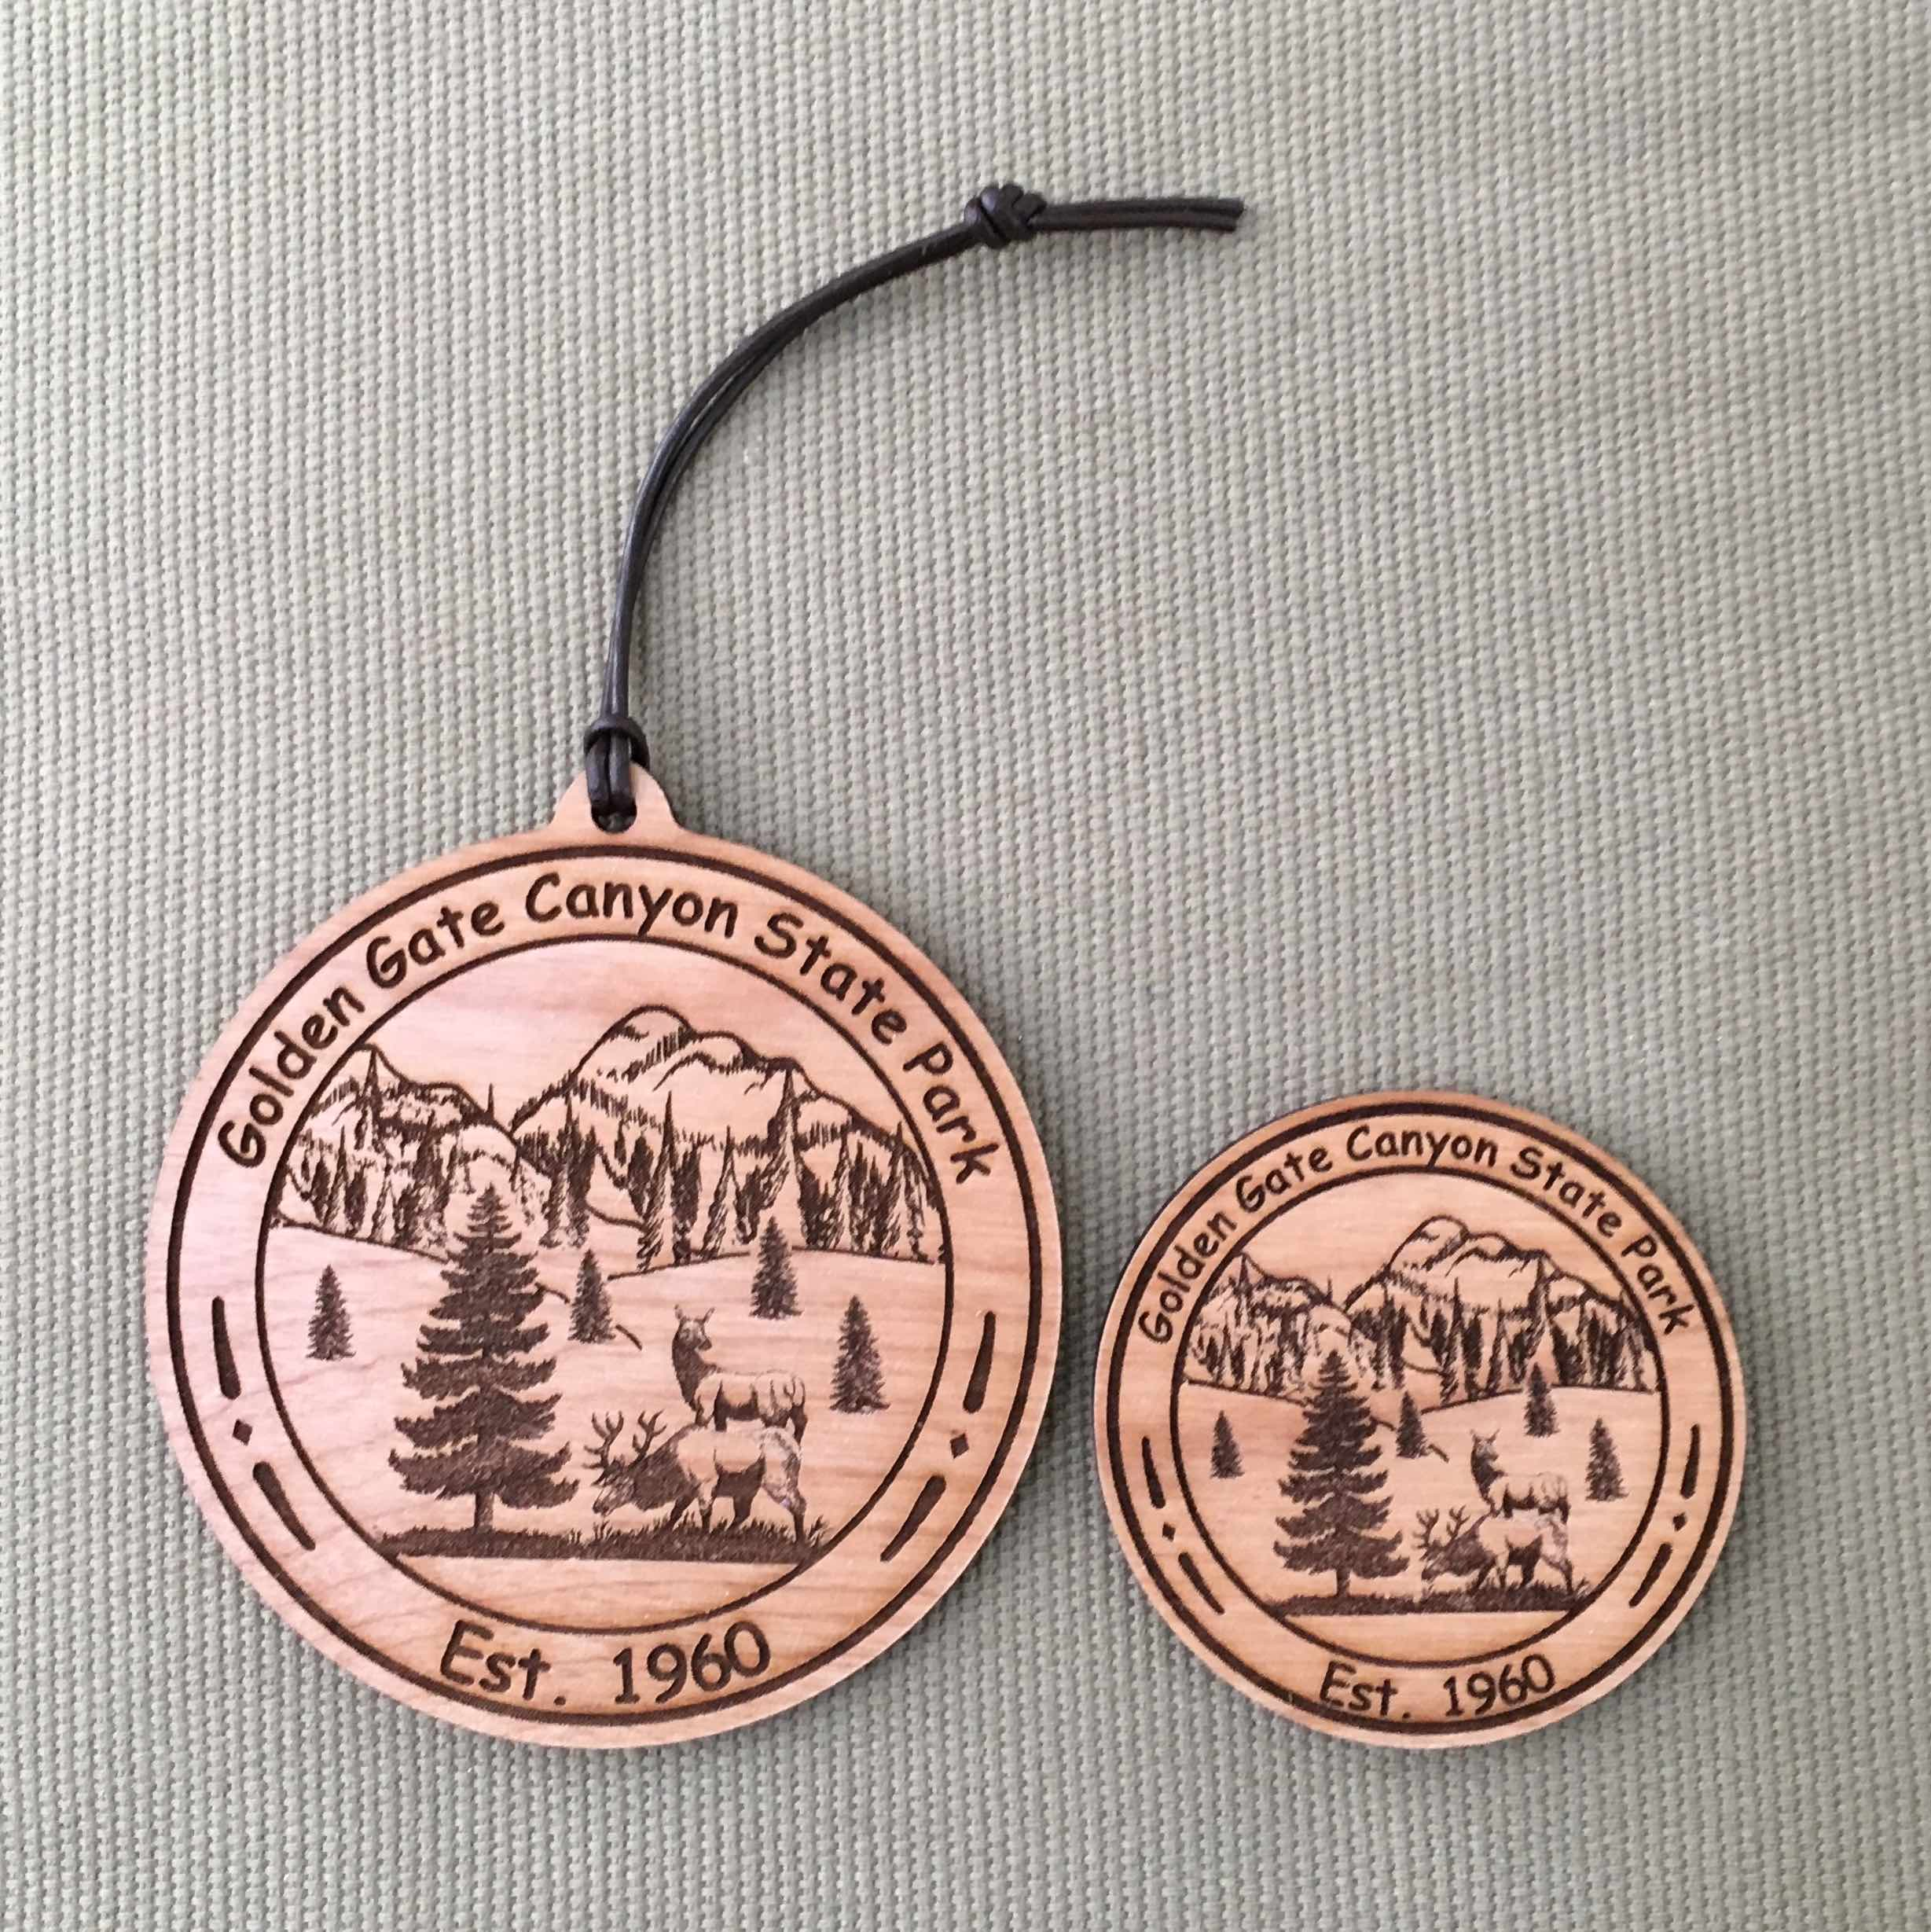 Golden Gate Canyon State Park Ornament & Magnet